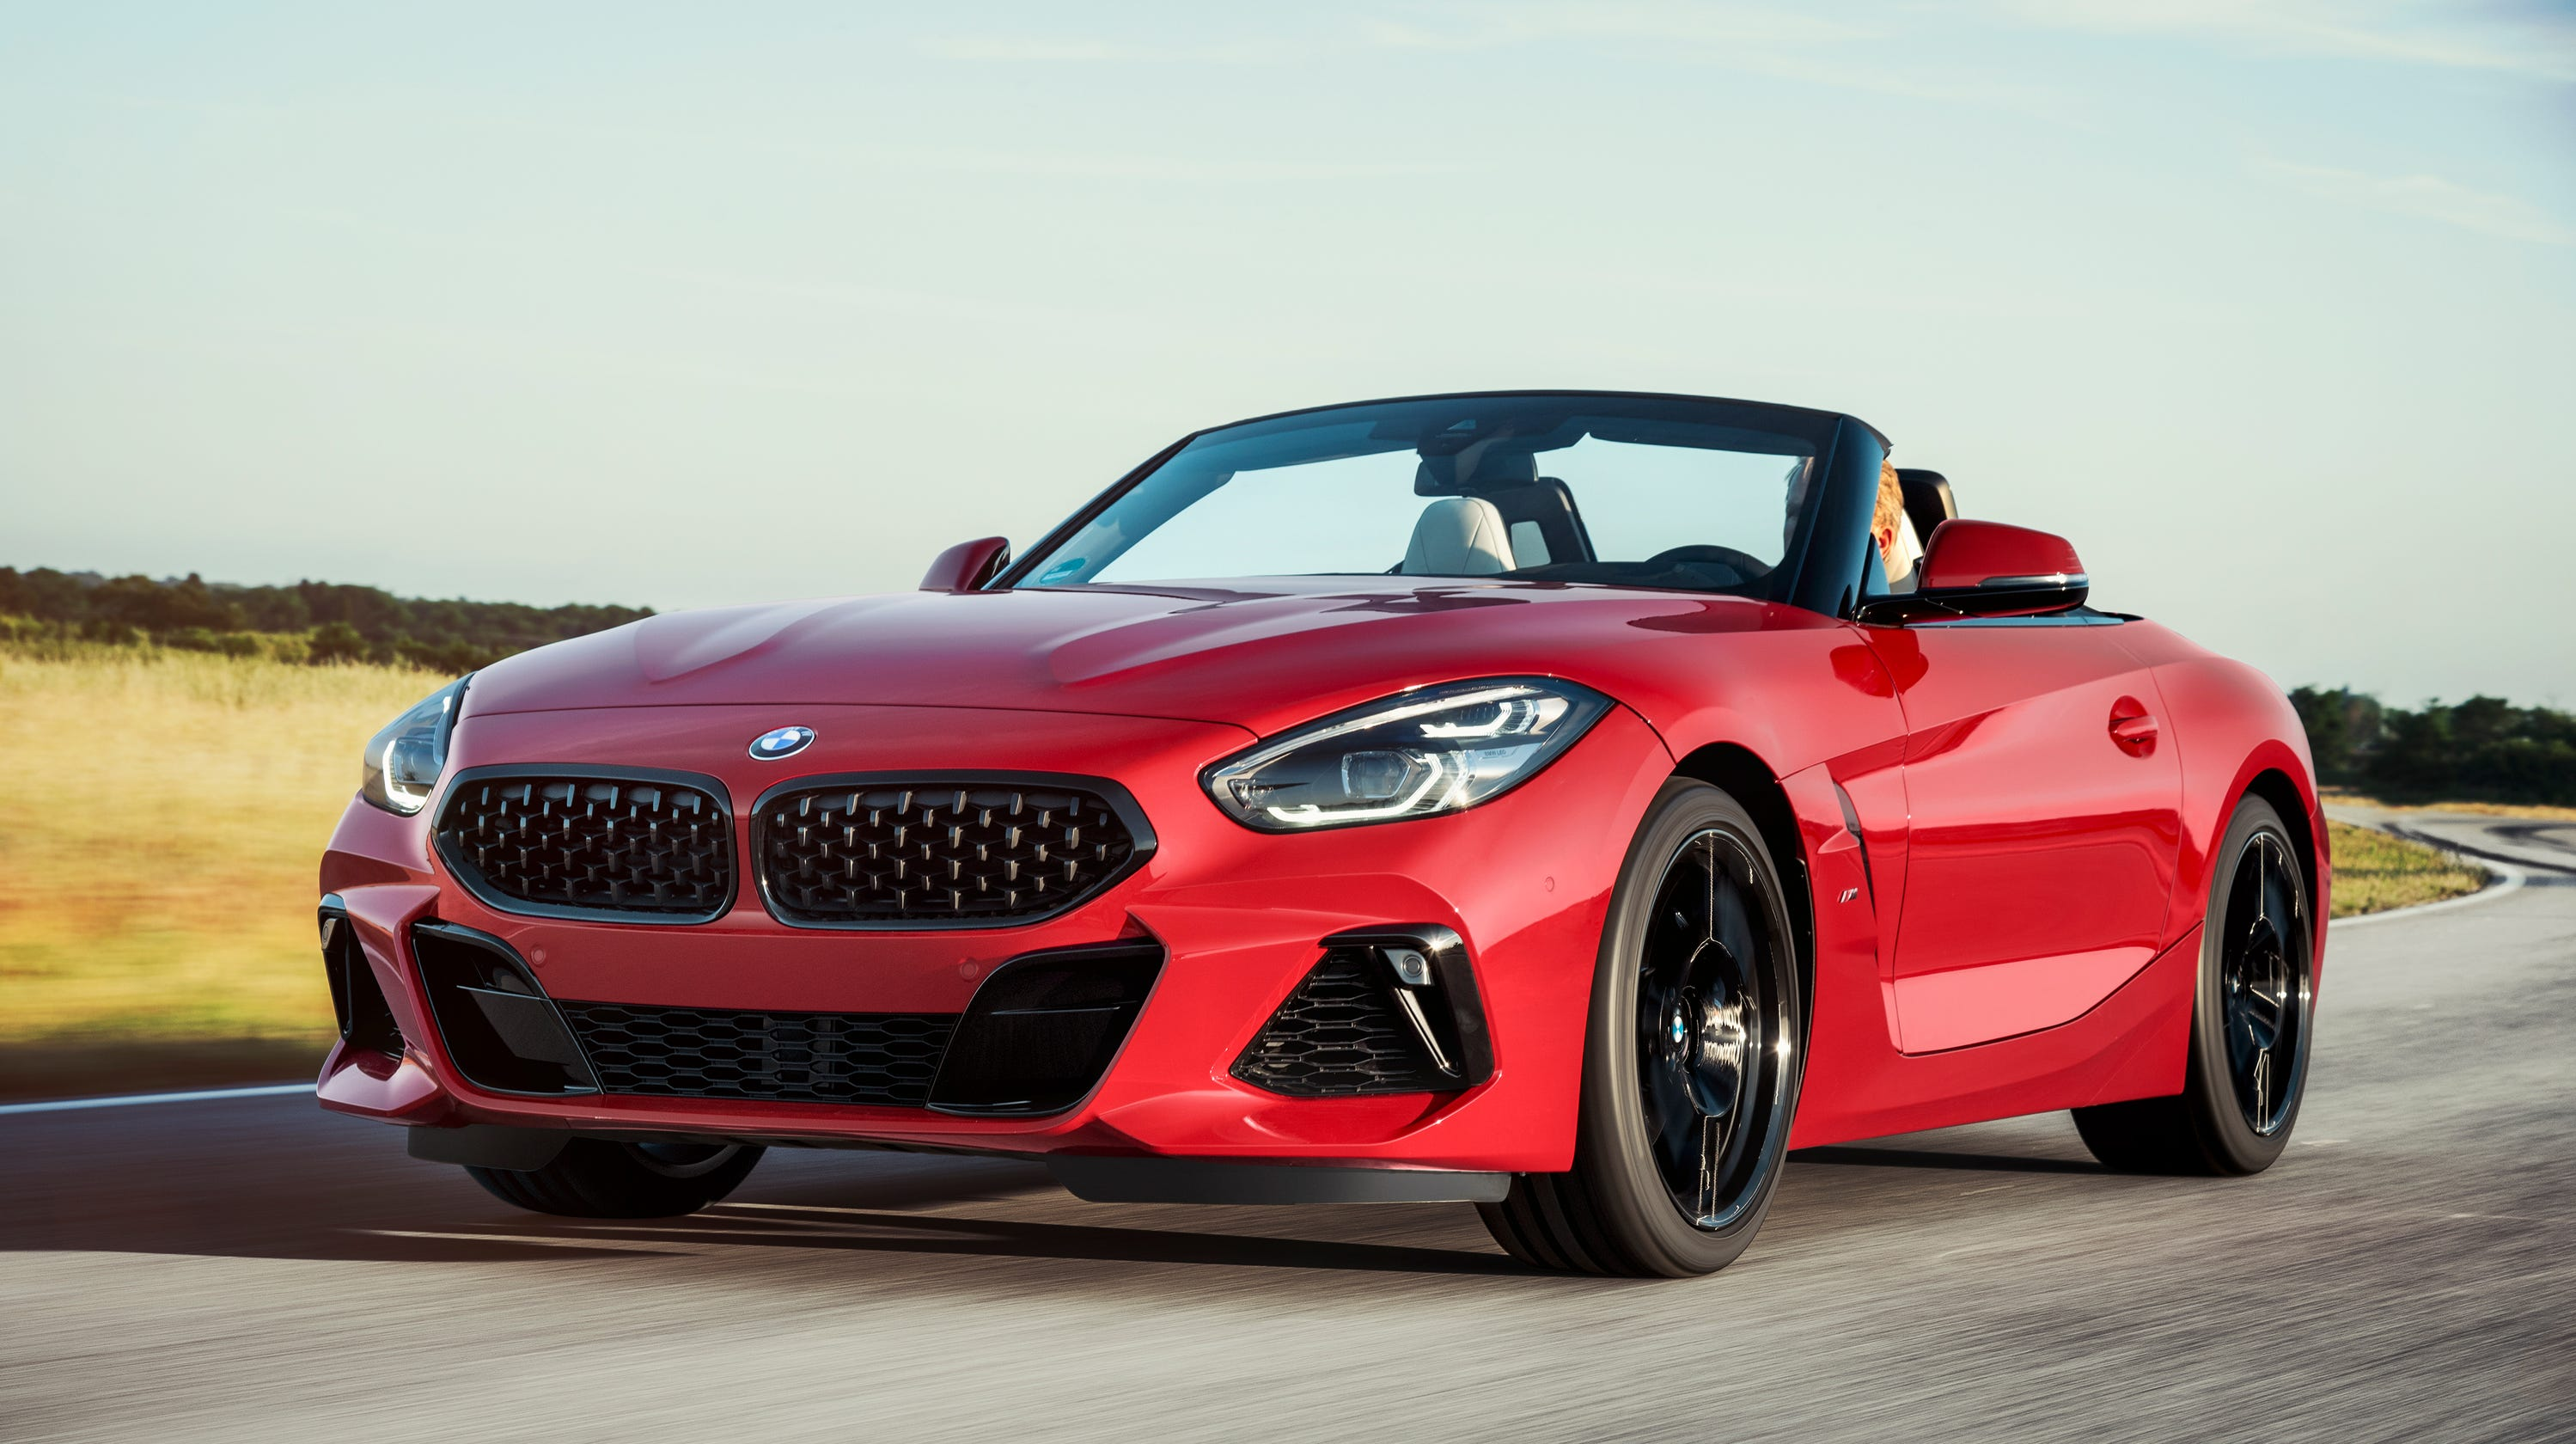 2019 Bmw Z4 Roadster Revealed Open Top Vehicle Debuts At